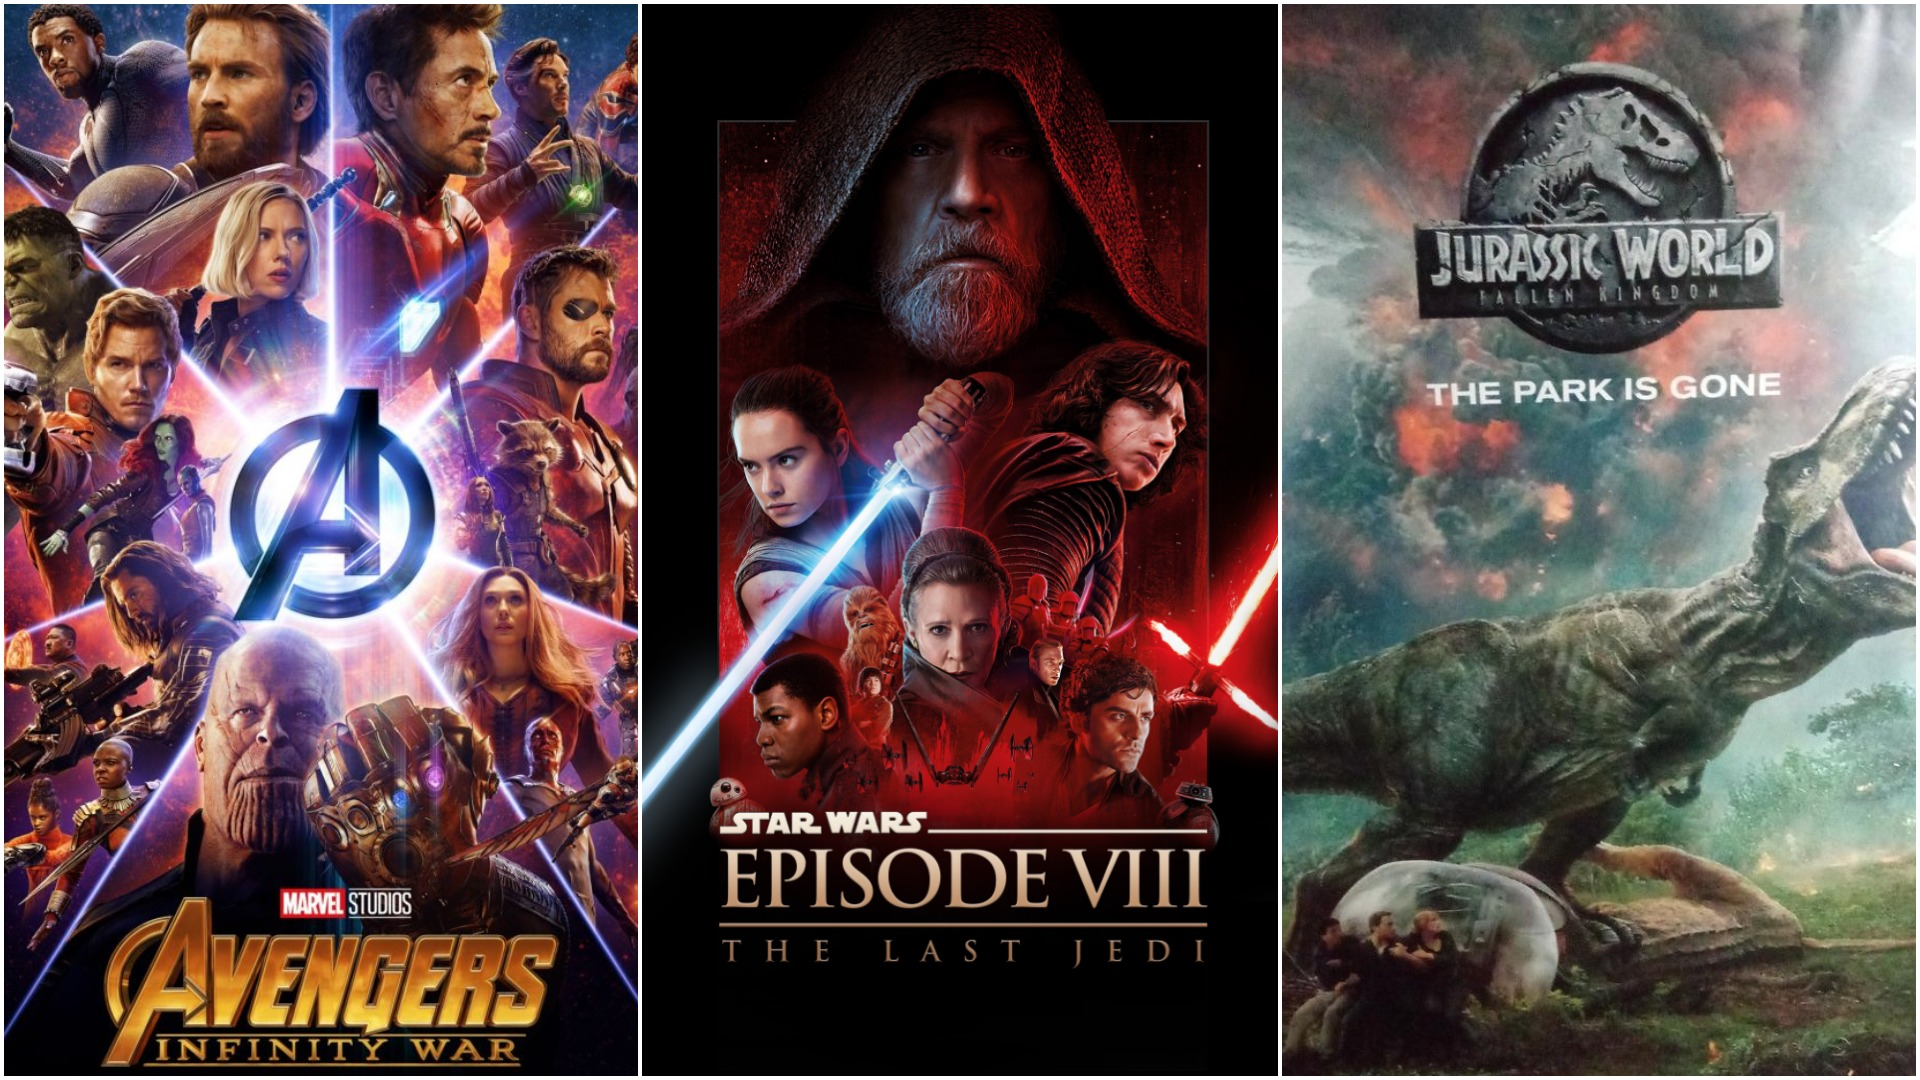 Avengers, Star Wars & Jurassic World